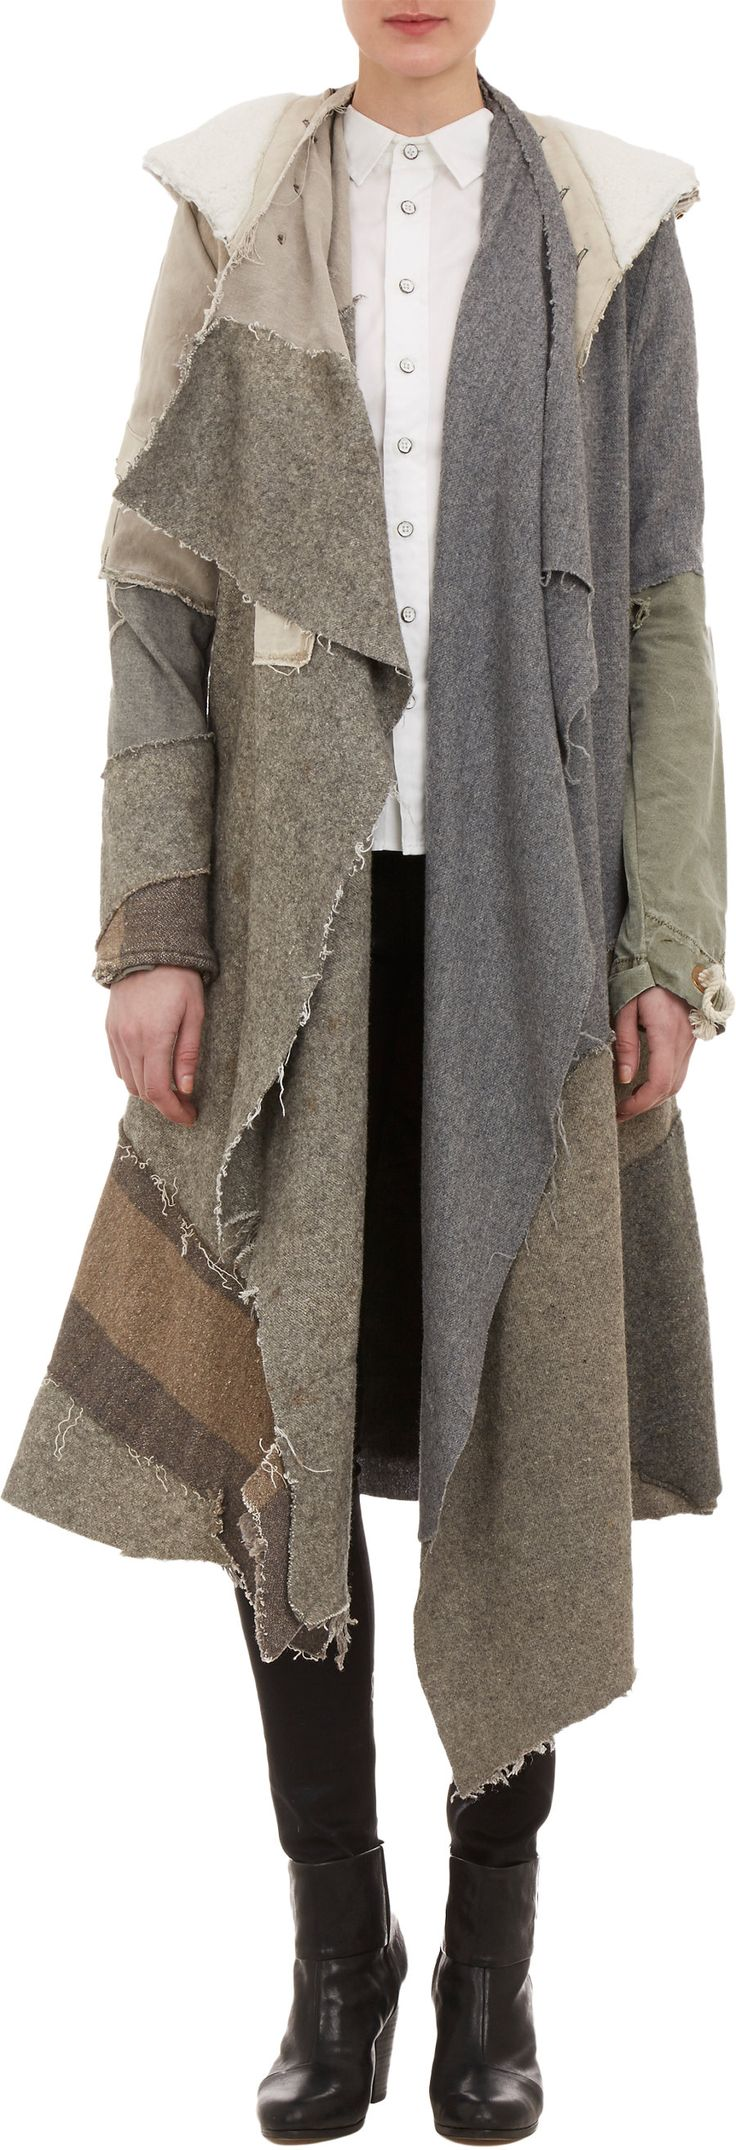 Greg Lauren Deconstructed Nomad Coat at Barneys.com